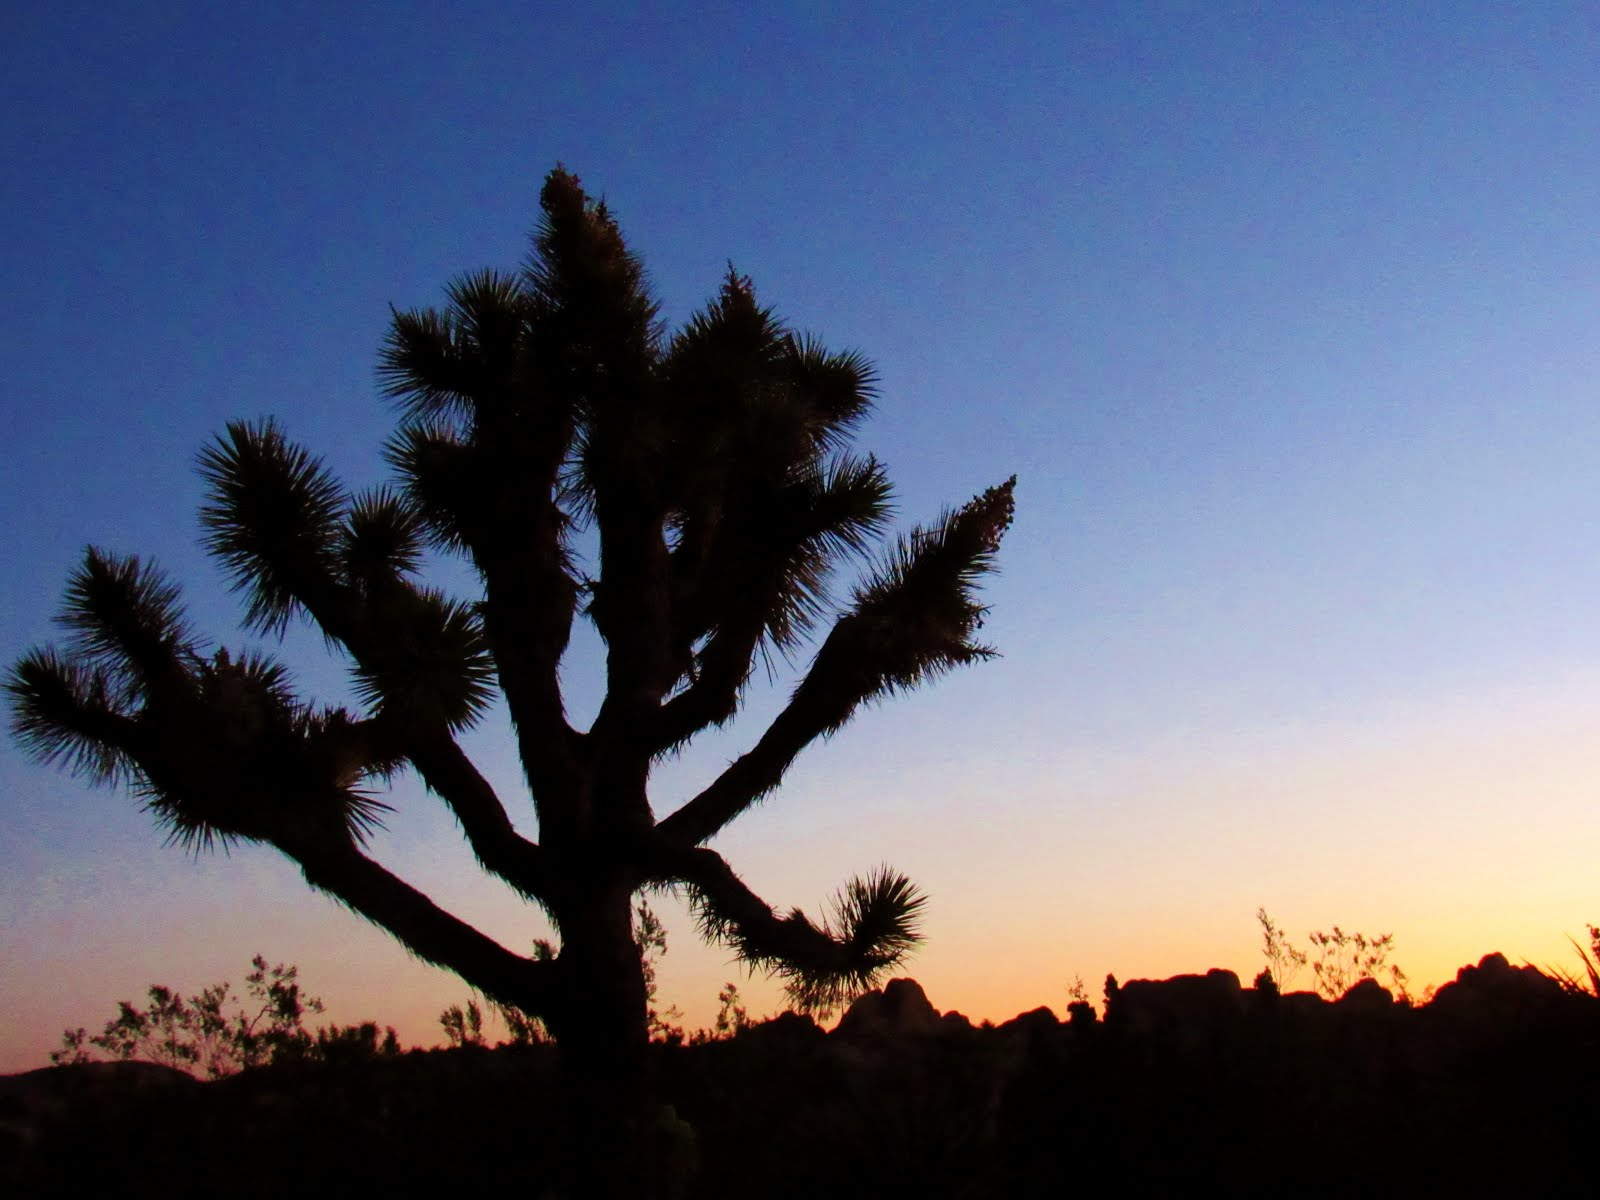 Joshua Tree Woodlands: A Tale of Sloths, Moths and the Trees that Need Them